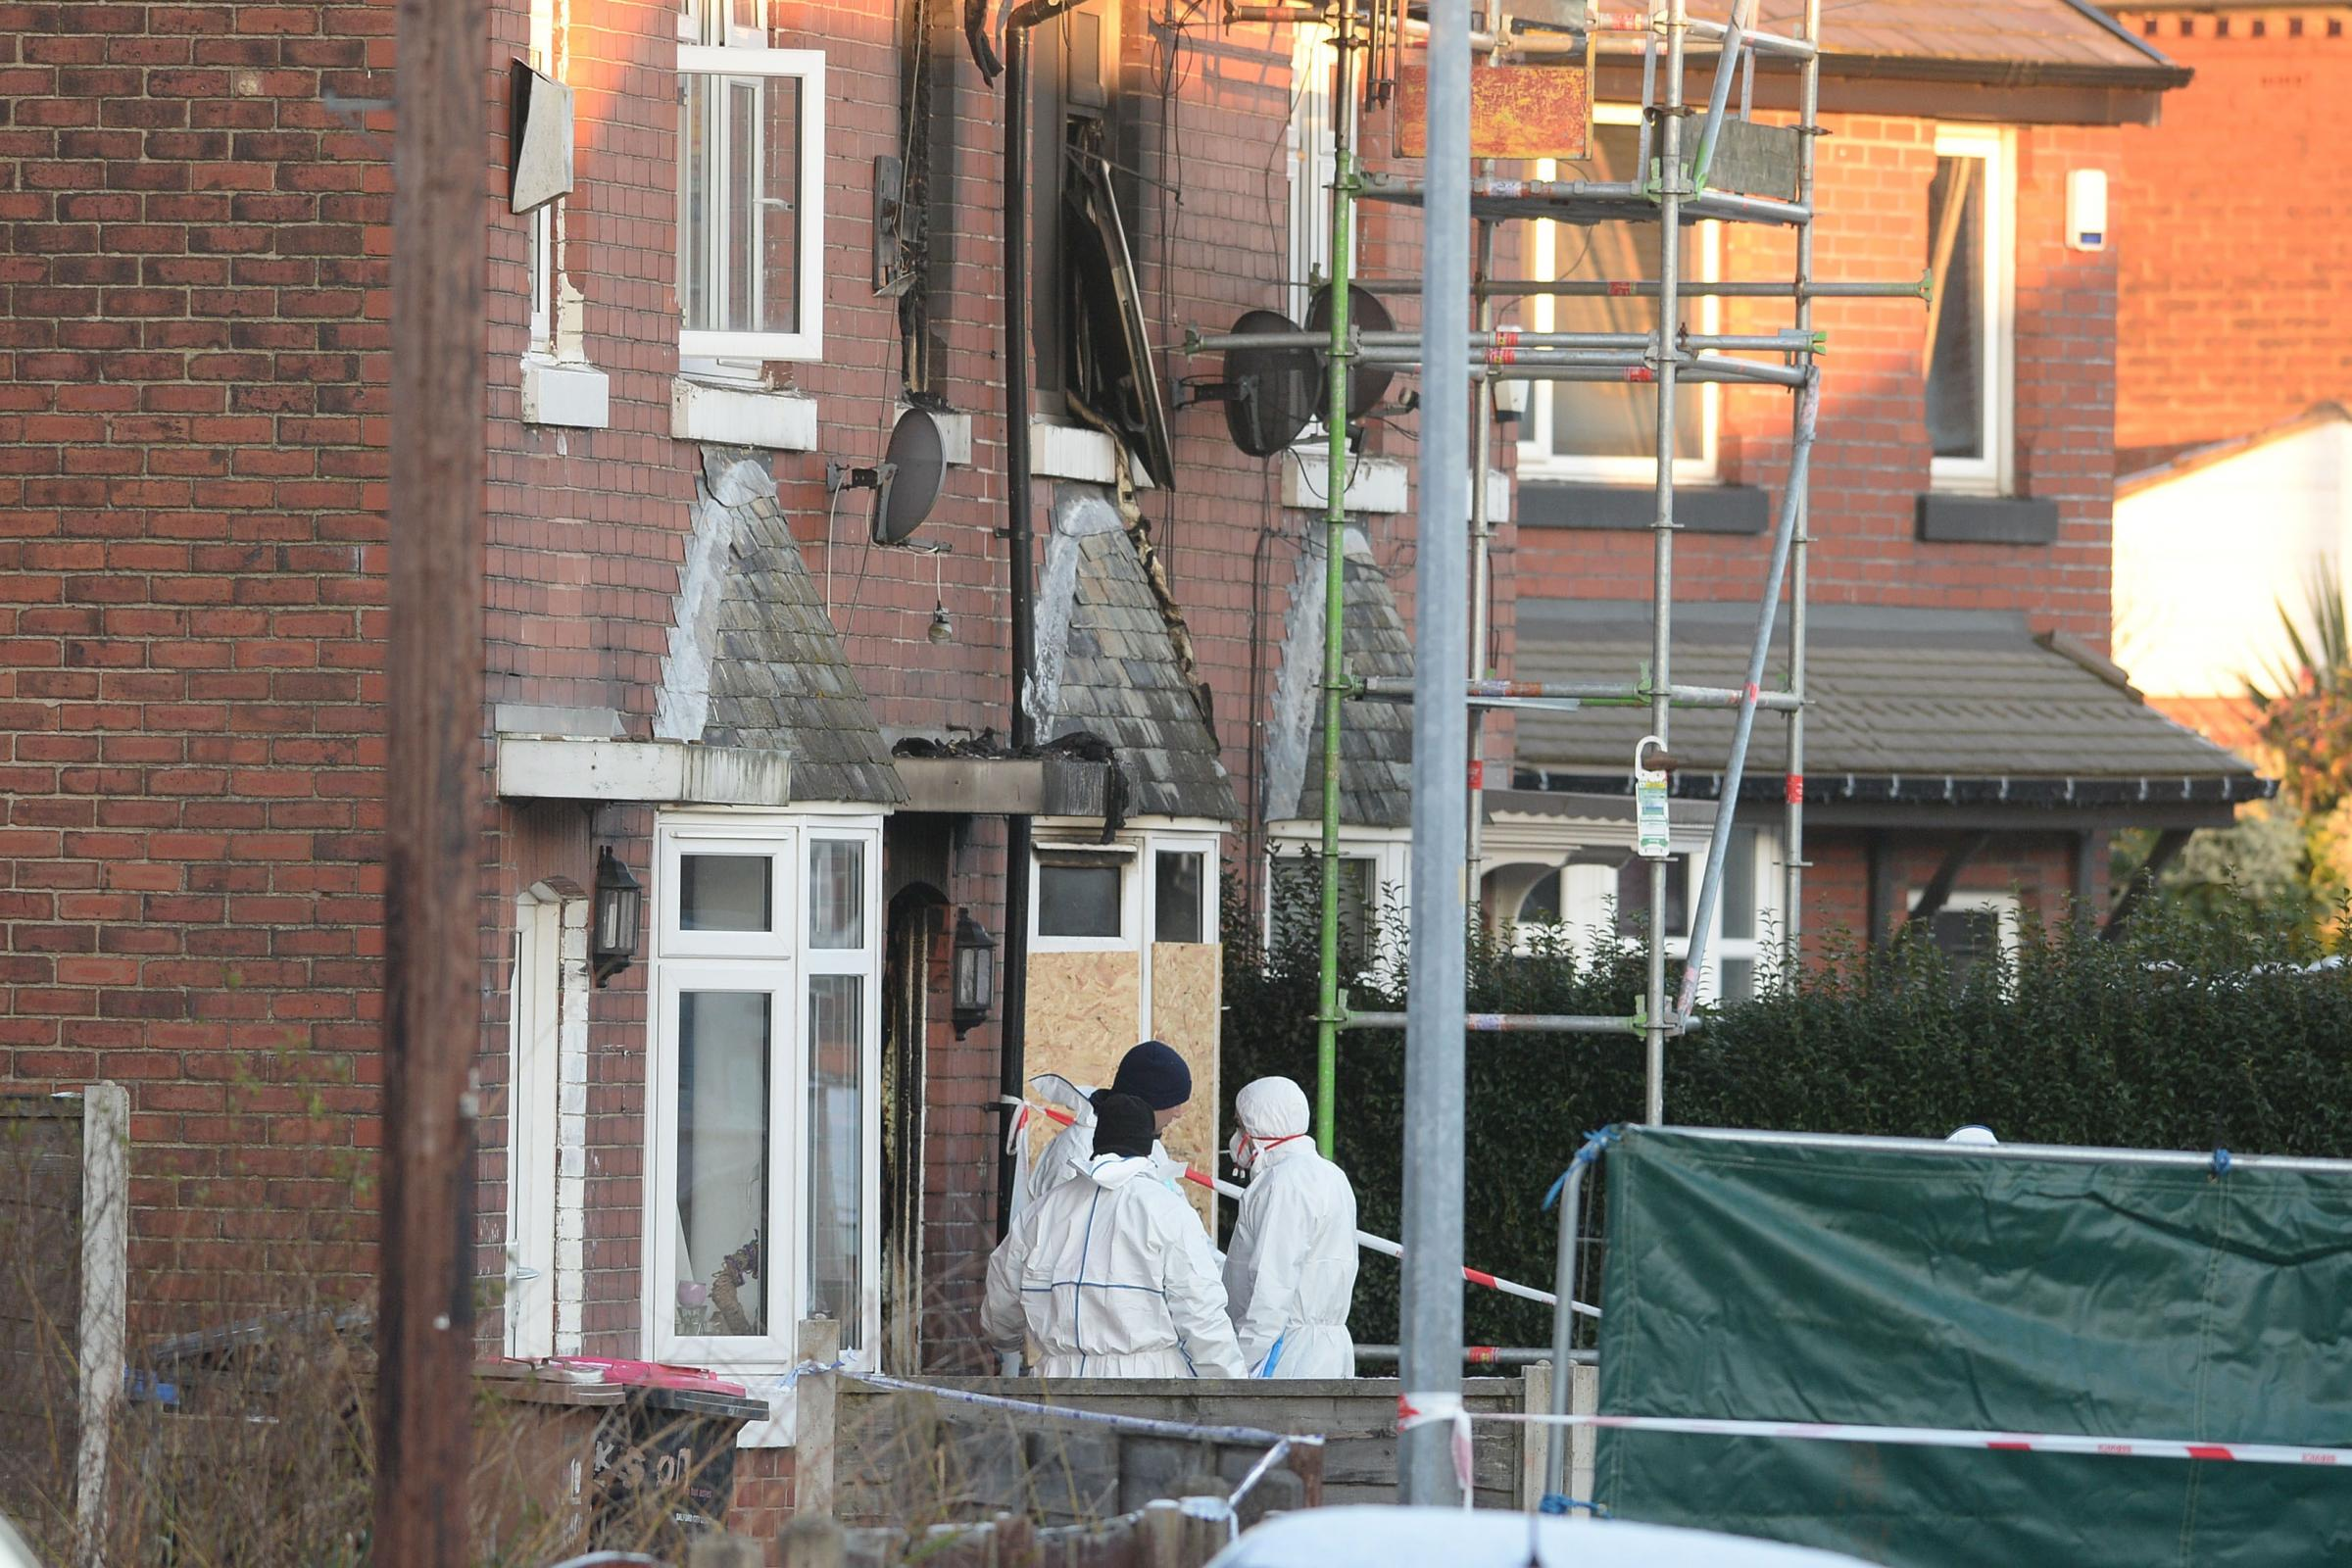 Forensic officers at the scene of a house fire on Jackson Street, Walkden, in which four children died (Peter Byrne/PA)